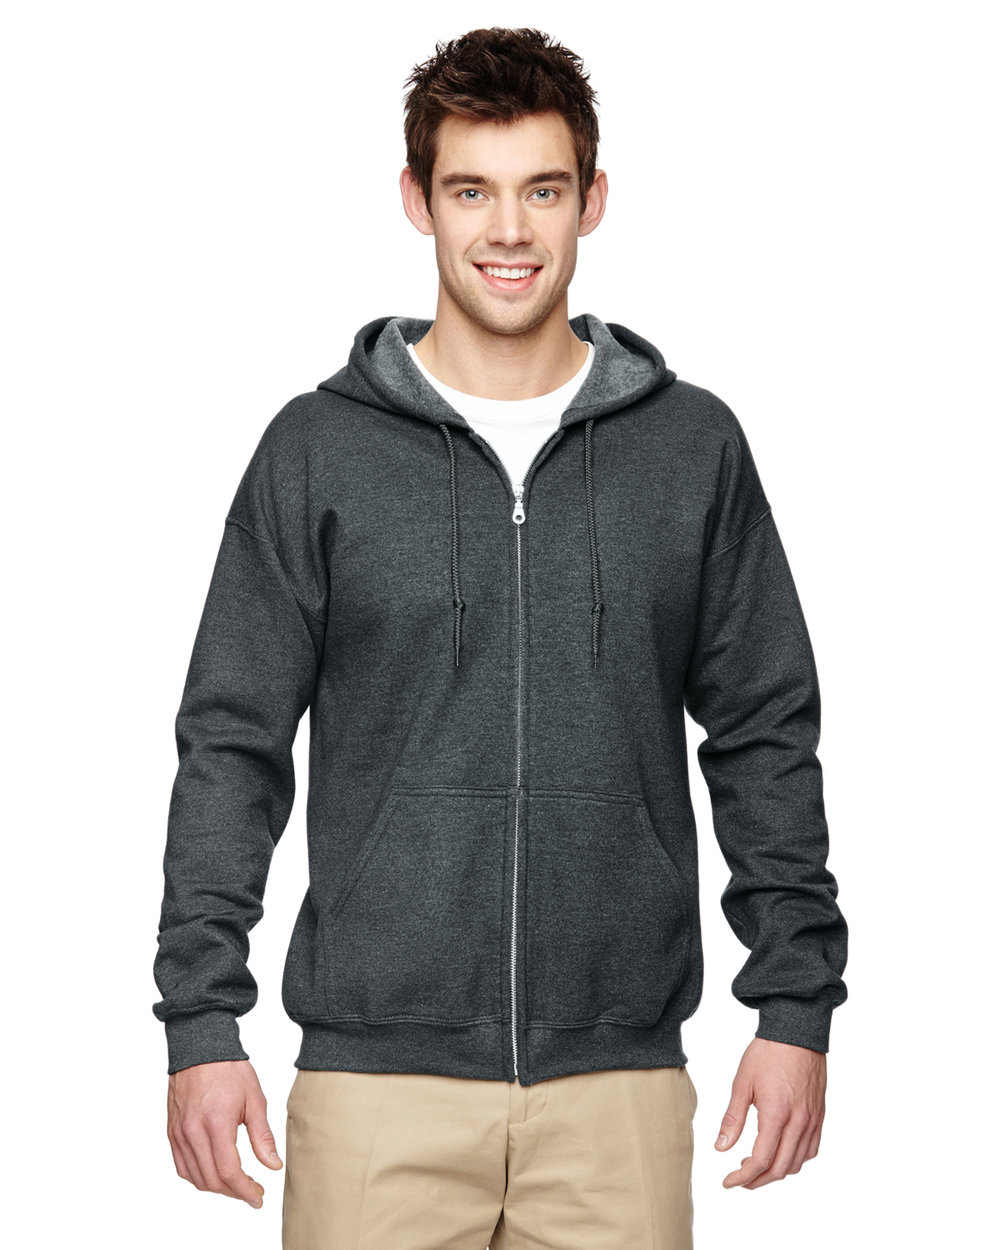 The Sweatshirt Store - Hoodies, Zip- Up's, Pull Over's...